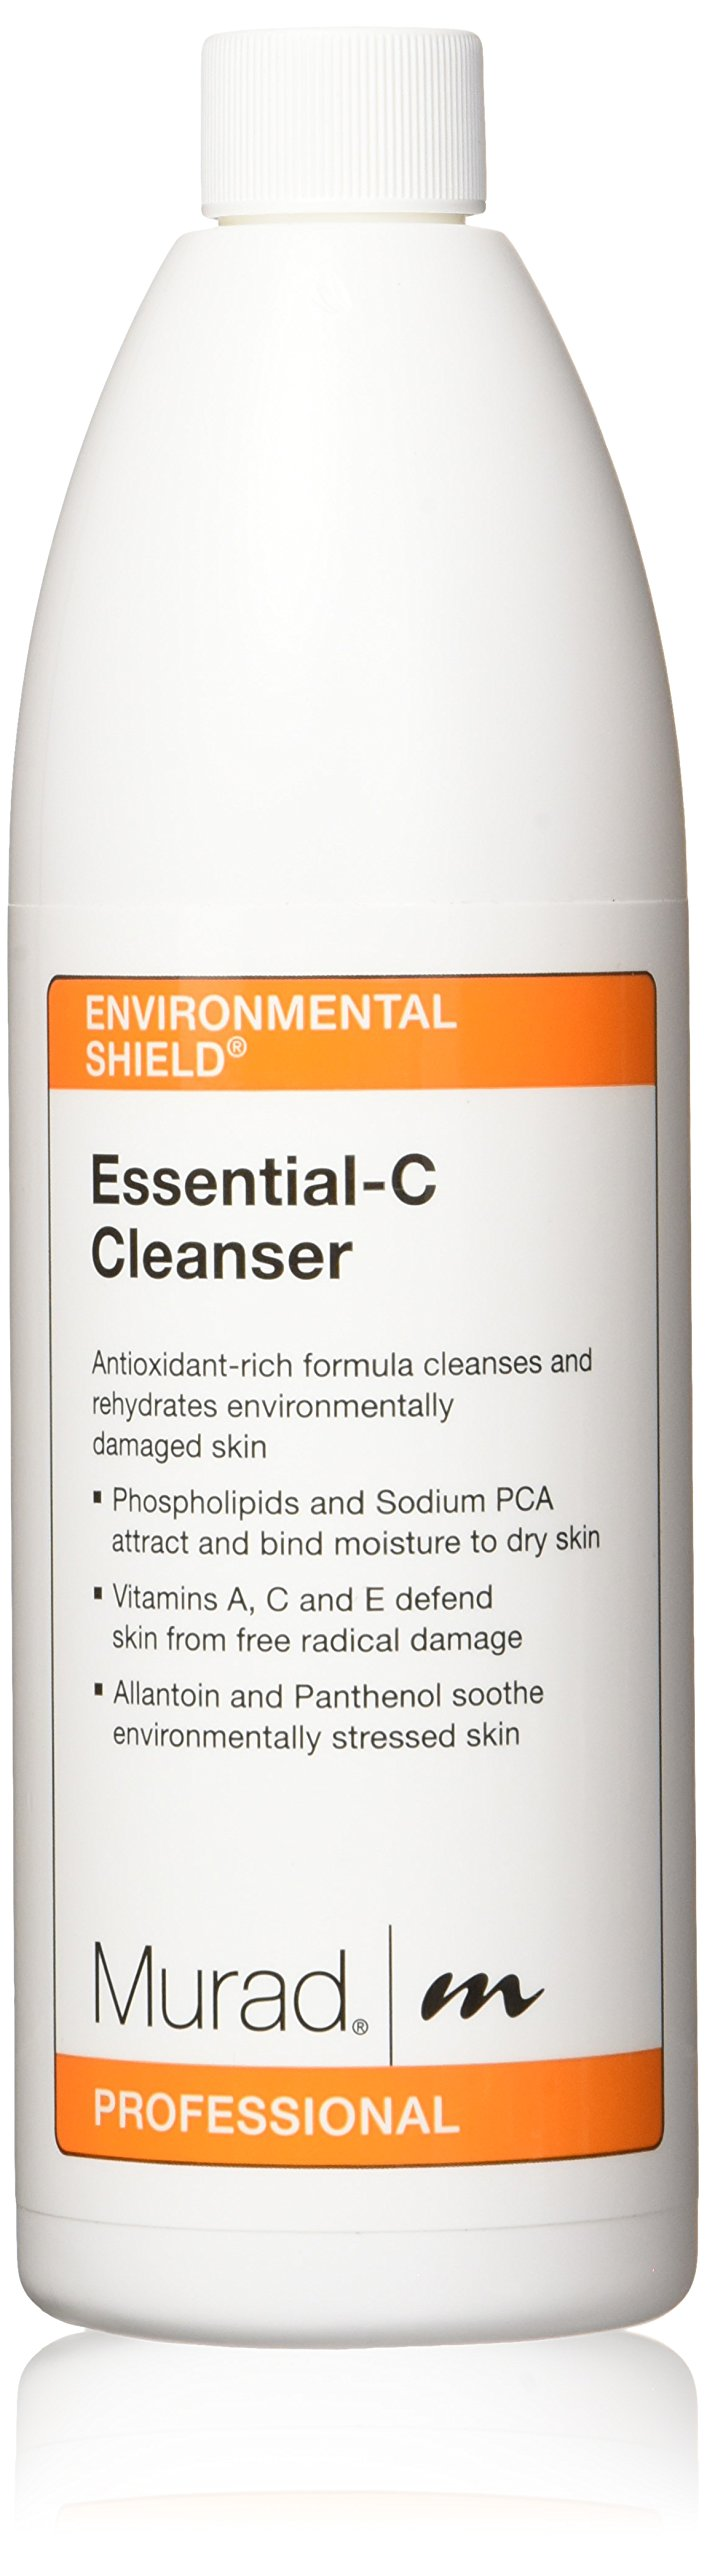 Murad Essential-C Cleanser, 16.9 Ounce